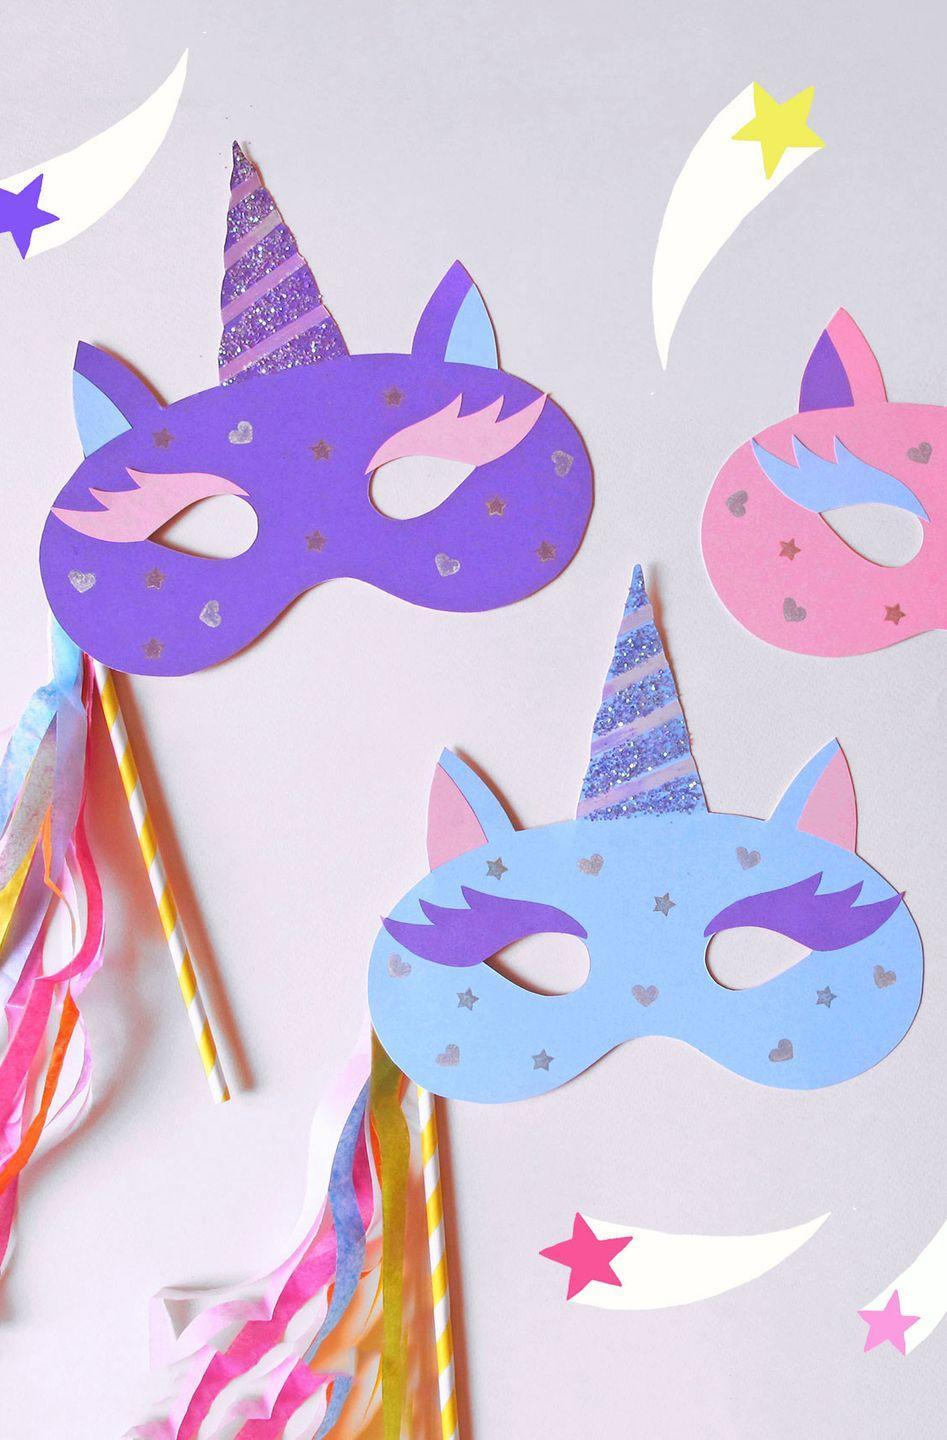 """<p>These glittery unicorn masks are so easy to assemble. No magic necessary!</p><p><strong>Get the tutorial at <a href=""""https://go.redirectingat.com?id=74968X1596630&url=https%3A%2F%2Fwww.paperchase.com%2Fthe-journal%2Fhow-to-make-a-unicorn-mask%2F&sref=https%3A%2F%2Fwww.countryliving.com%2Fdiy-crafts%2Fg3480%2Fdiy-halloween-masks%2F"""" rel=""""nofollow noopener"""" target=""""_blank"""" data-ylk=""""slk:Paperchase"""" class=""""link rapid-noclick-resp"""">Paperchase</a>.</strong></p><p><a class=""""link rapid-noclick-resp"""" href=""""https://www.amazon.com/Card-Stock-Colorful-Assortment-101199/dp/B0006HXSU6/?tag=syn-yahoo-20&ascsubtag=%5Bartid%7C10050.g.3480%5Bsrc%7Cyahoo-us"""" rel=""""nofollow noopener"""" target=""""_blank"""" data-ylk=""""slk:SHOP CARD STOCK PAPER"""">SHOP CARD STOCK PAPER</a> </p>"""